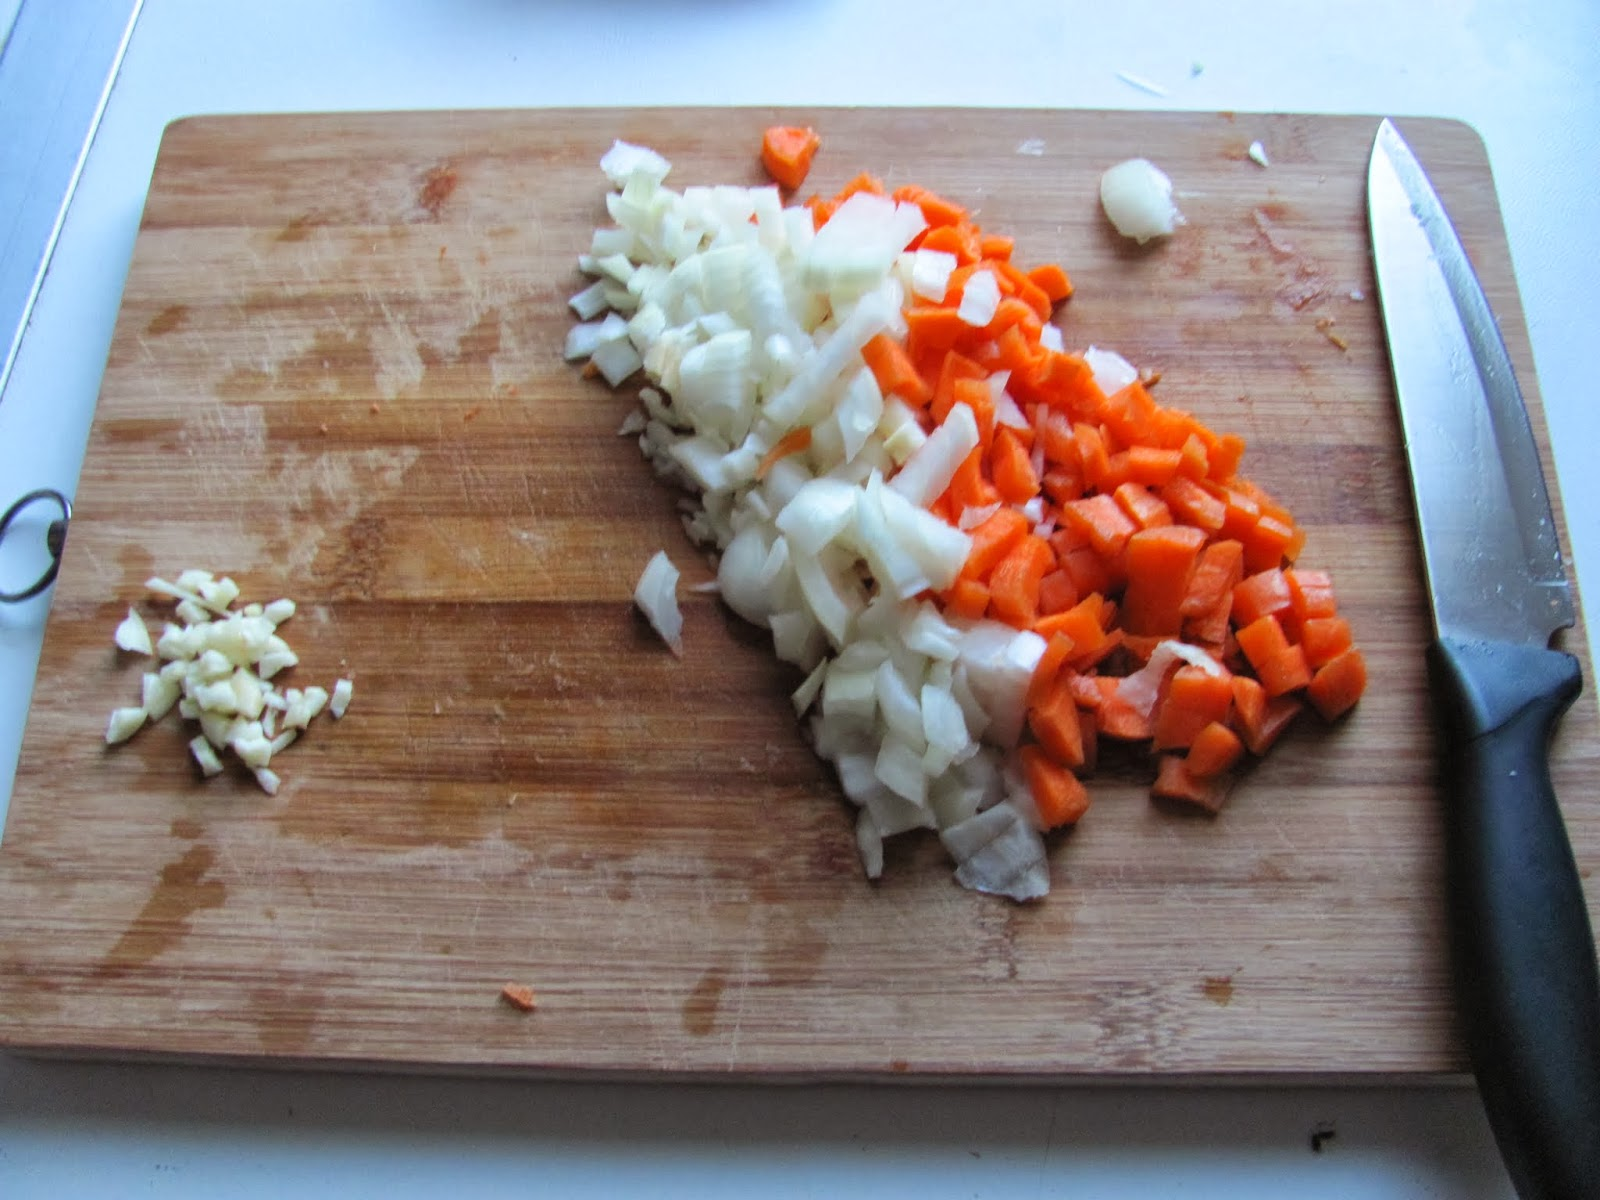 Carrots, onion, and garlic chopped for sauce